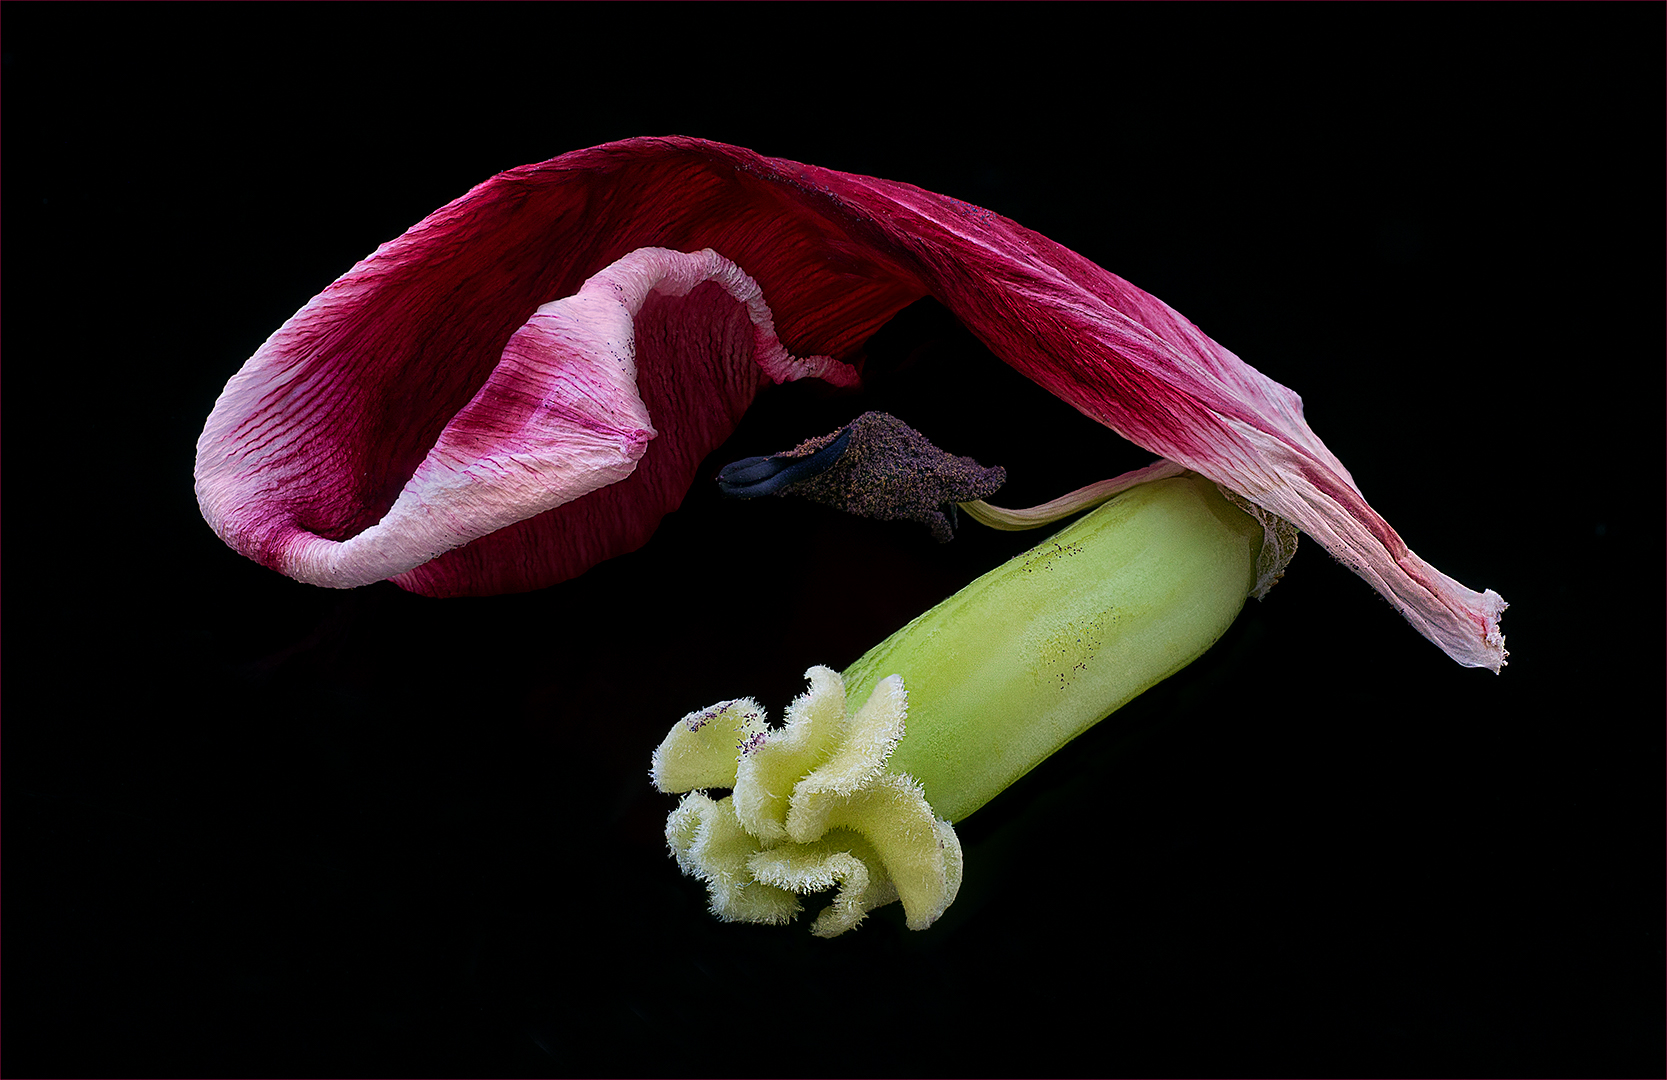 Remains of a Tulip